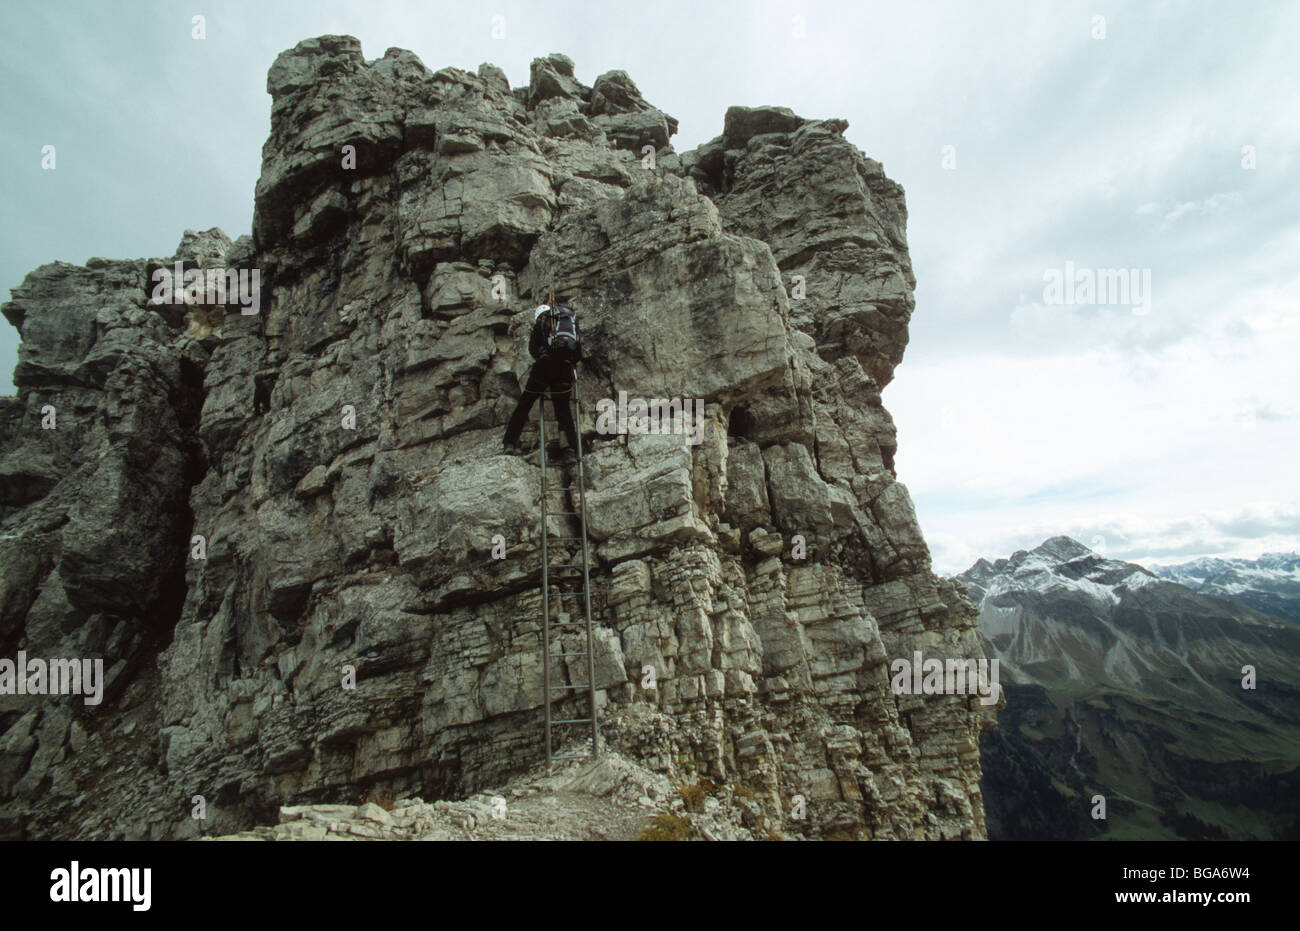 Klettersteig Germany : Calmont klettersteig in the mosel region all you want to know